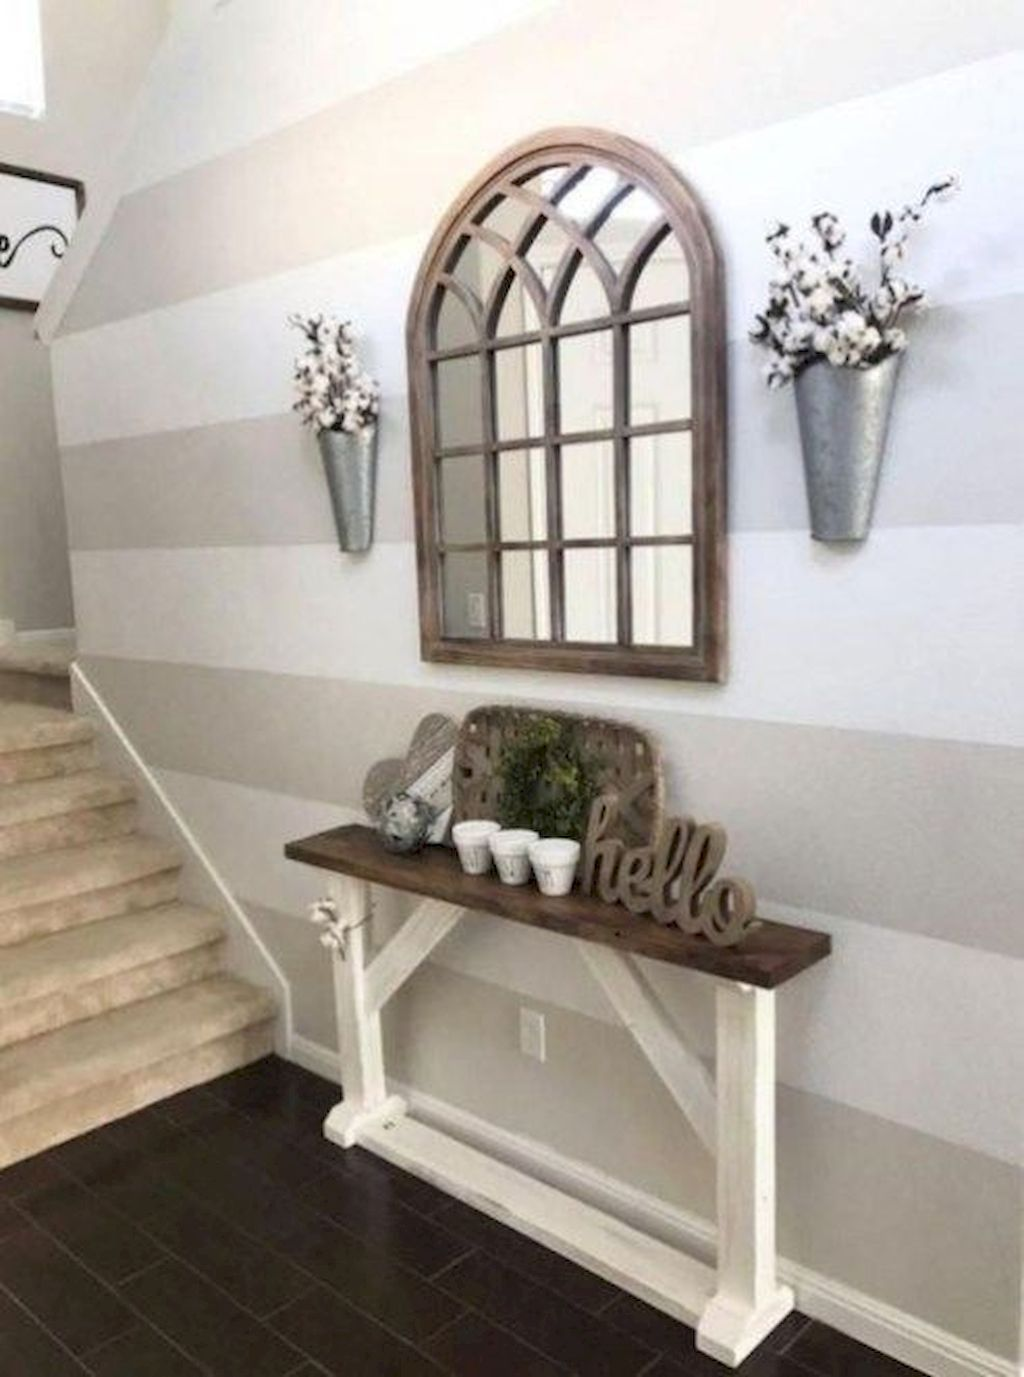 Diy home decor easy to ingenious ideas simply must have ways formulate  wonderfully classy on budget pin shared this moment also stunning rustic entryway decorating rh pinterest